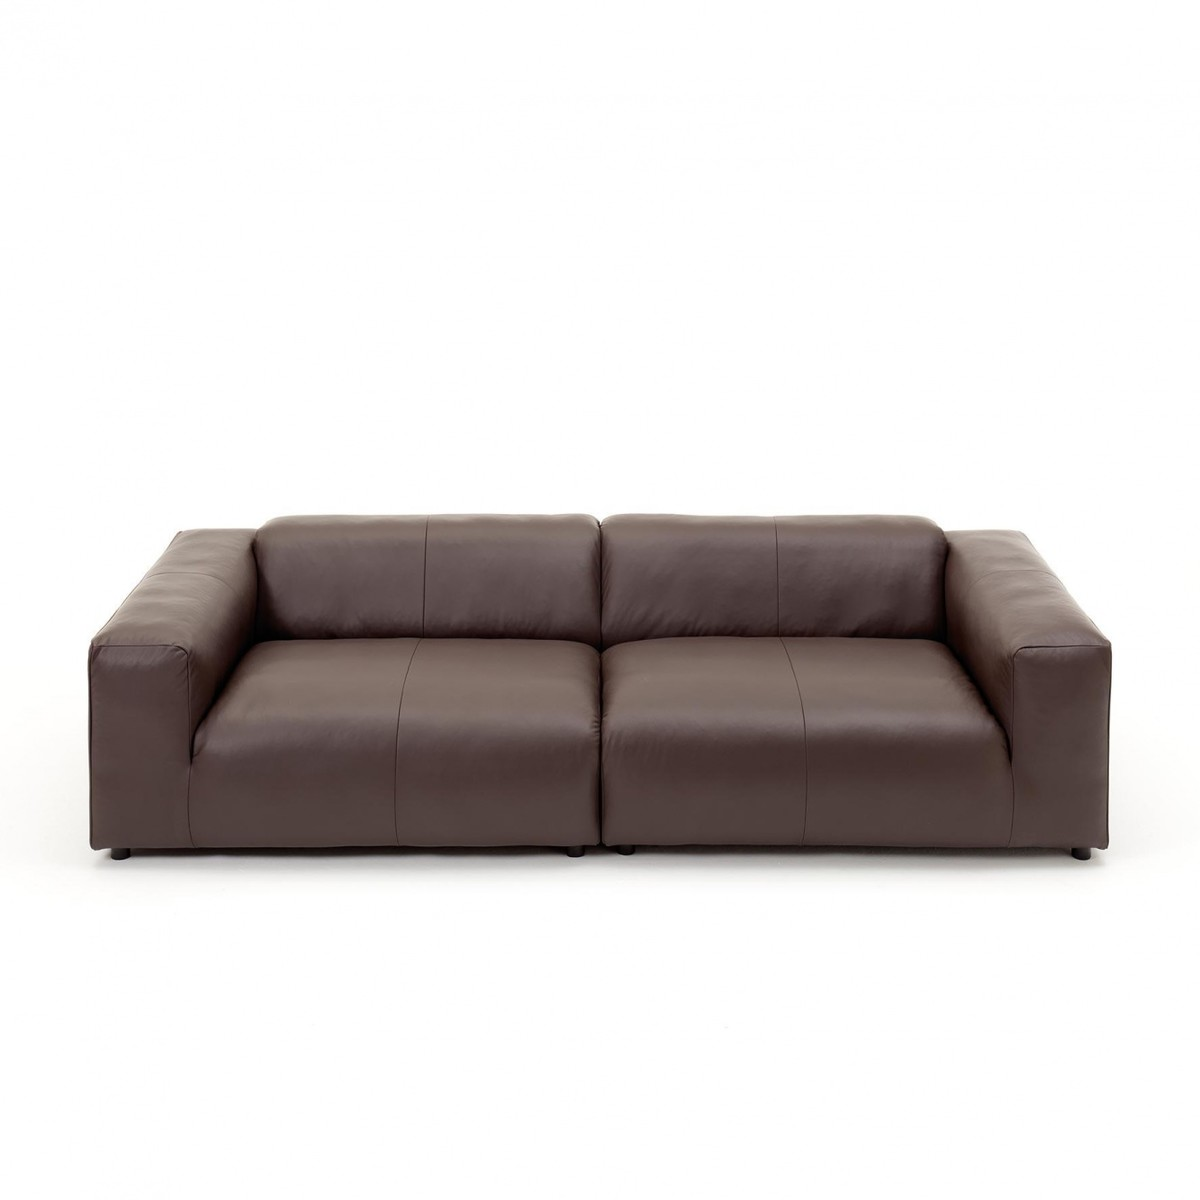 Freistil 187 3 Seater Leather Sofa Freistil Rolf Benz